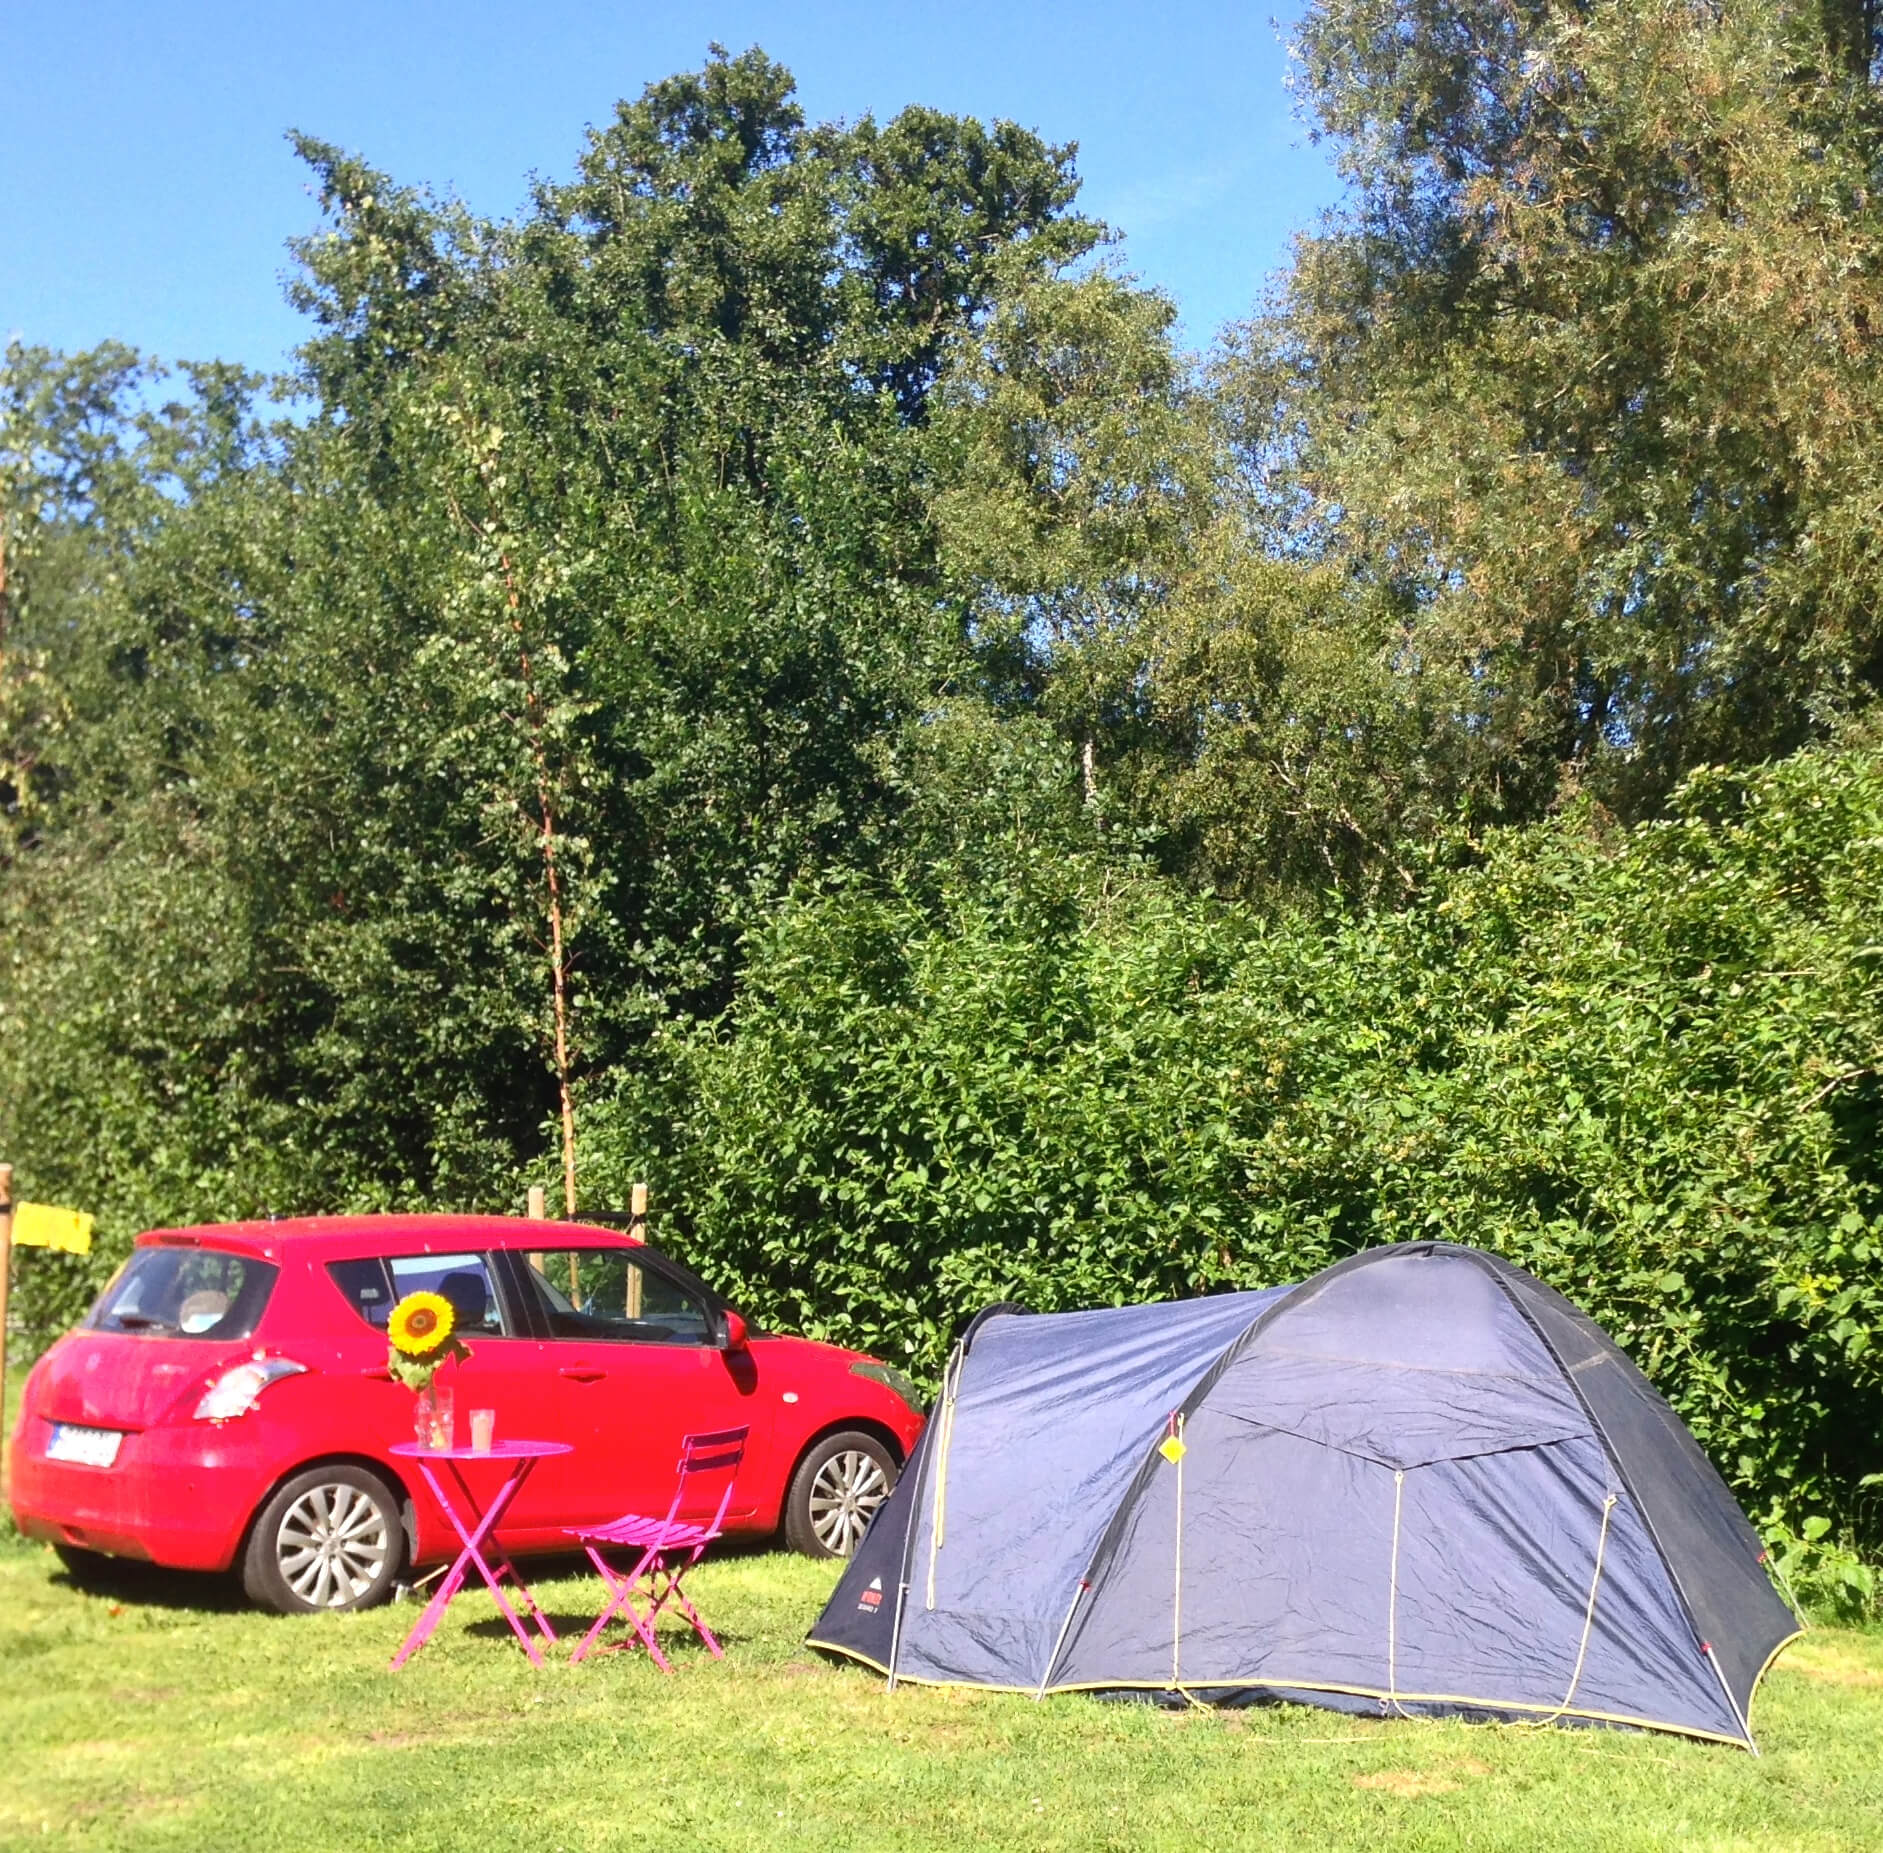 lifestyle_camping_ostsee